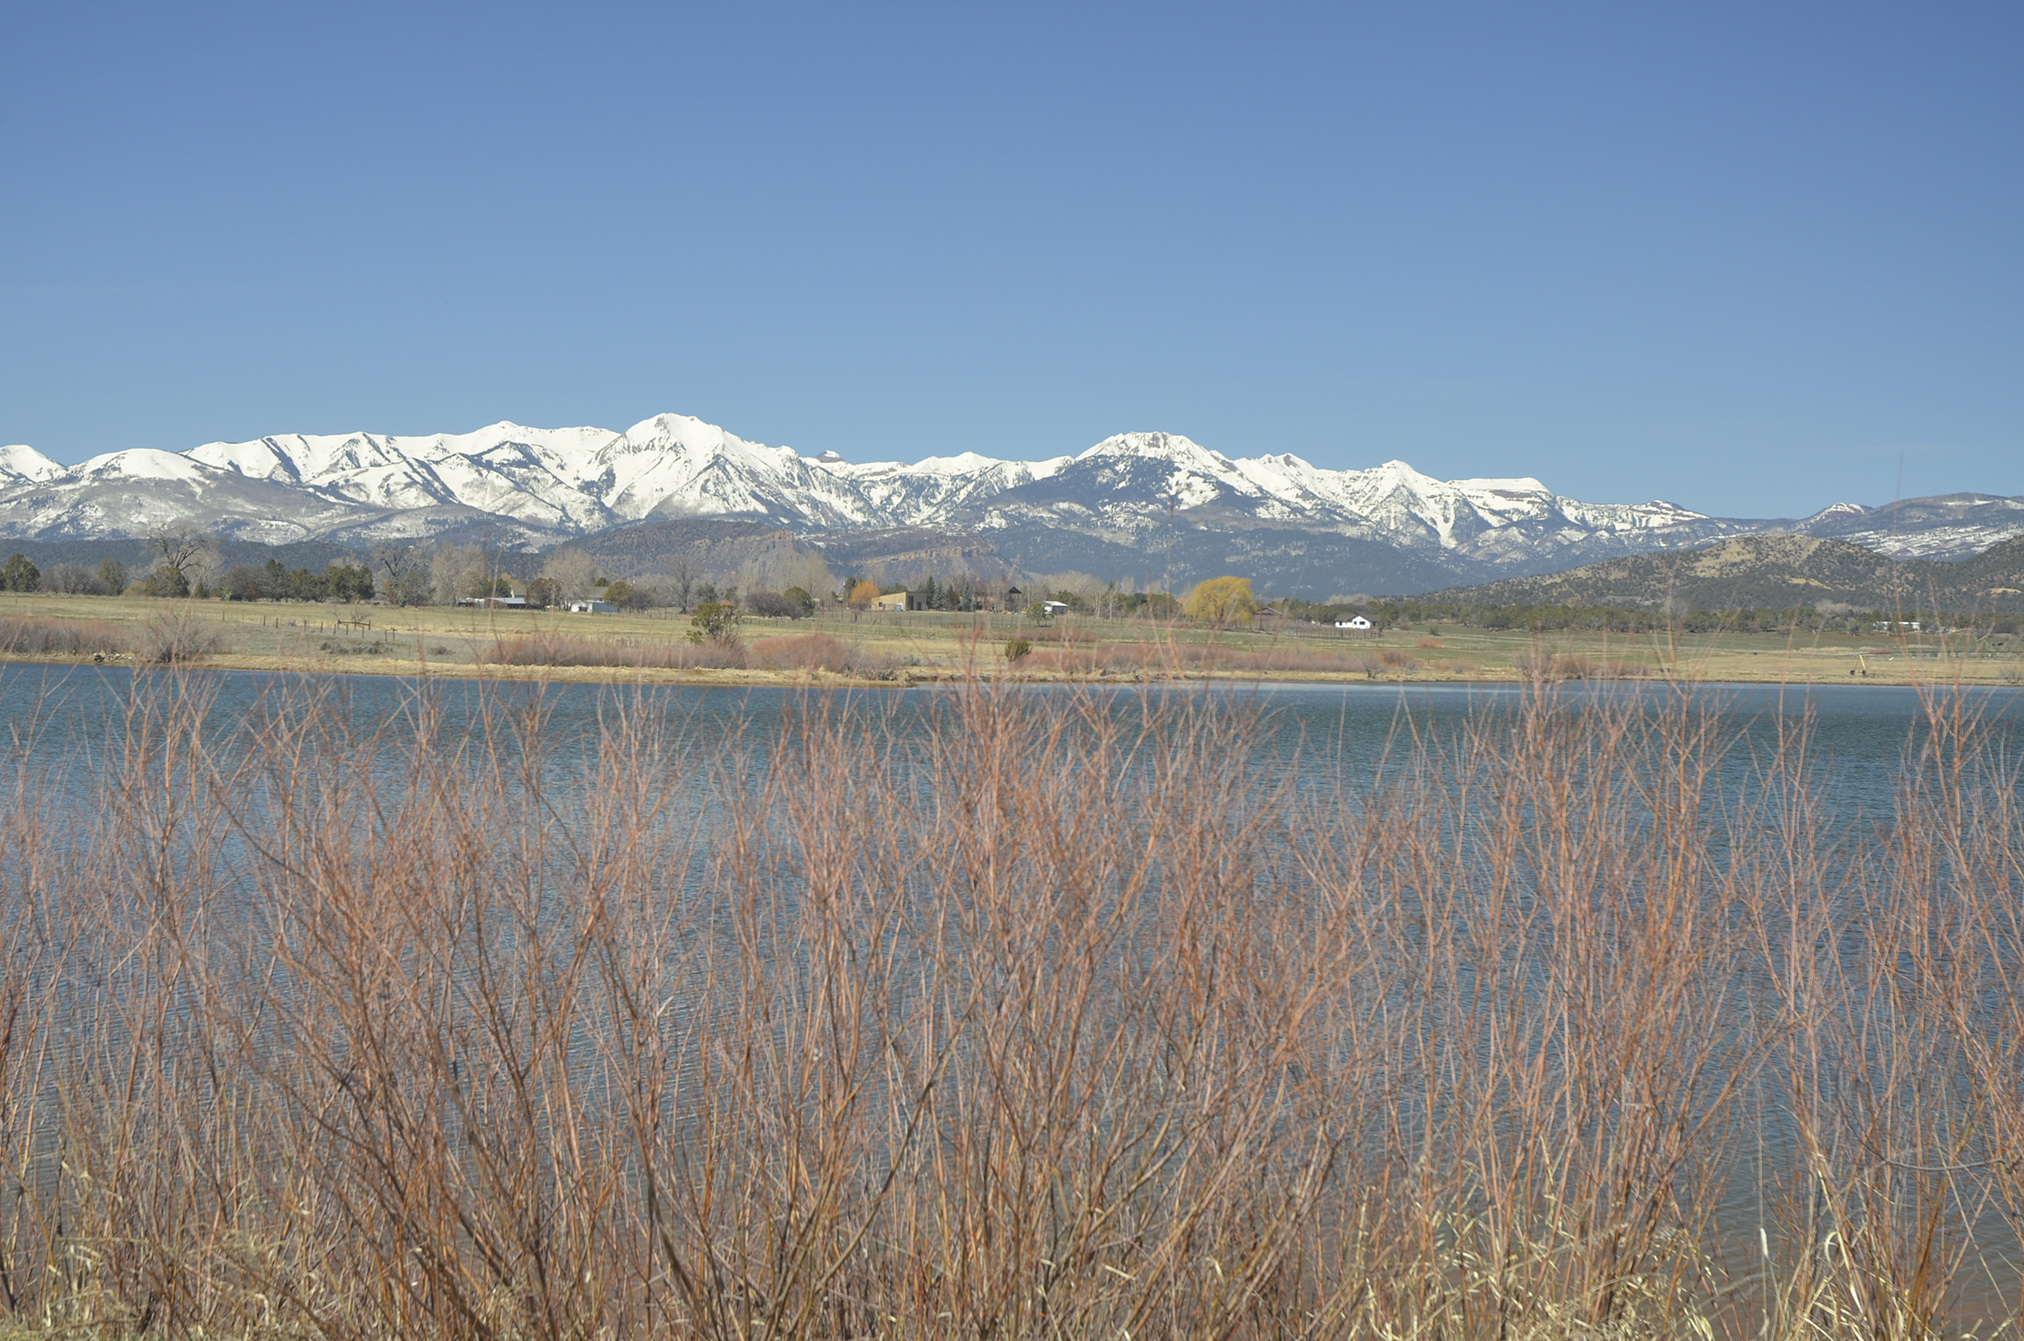 <p>Pastorius Reservoir, located about 15 miles southeast of Durango, is an 80-acre irrigation reservoir. It is a popular recreation area for fishing, bird-watching and duck hunting.</p>